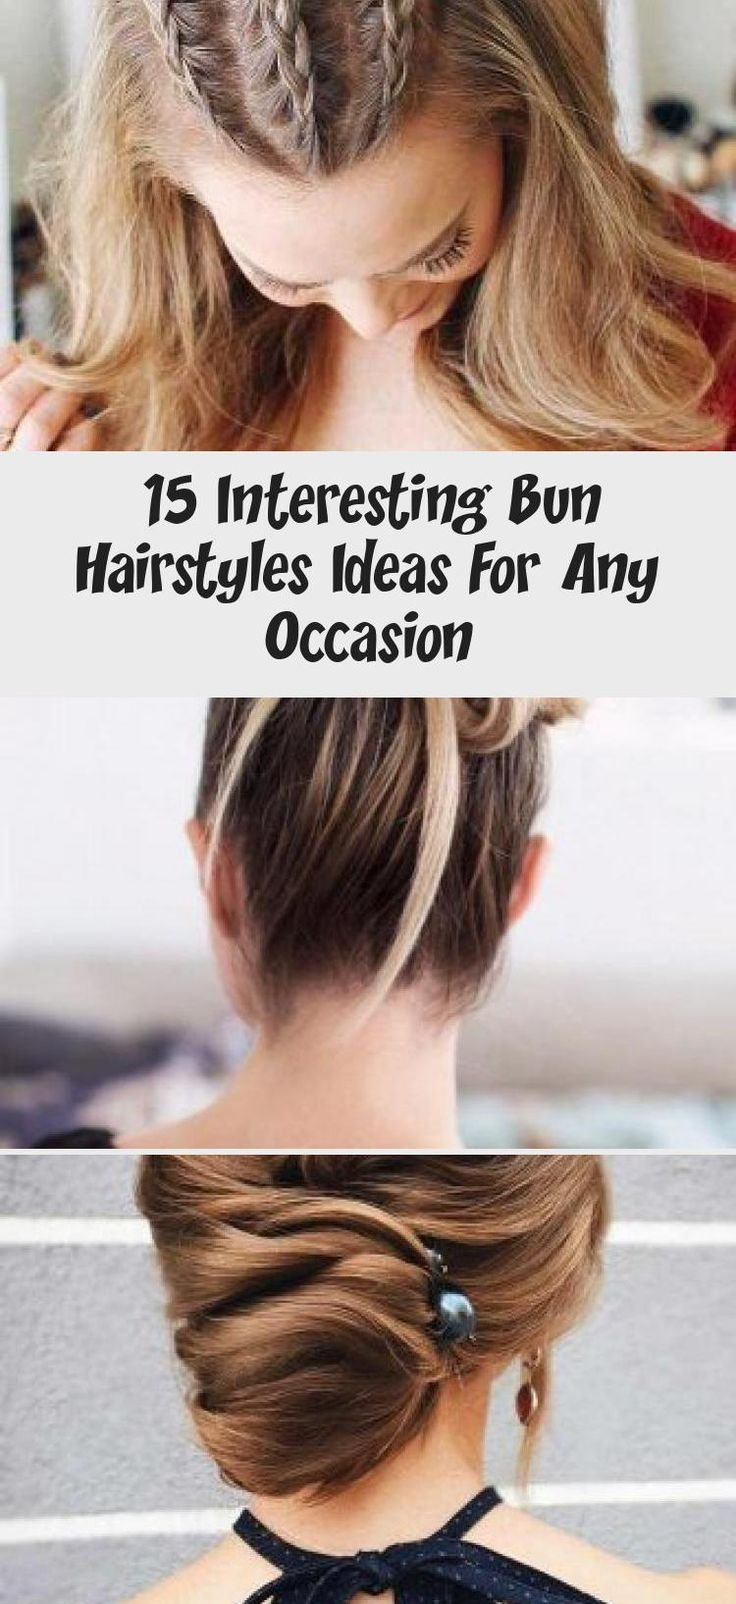 15 Interesting Bun Hairstyles Ideas For Any Occasion - WEDDING in 2020 | Bun hairstyles, Bob ...